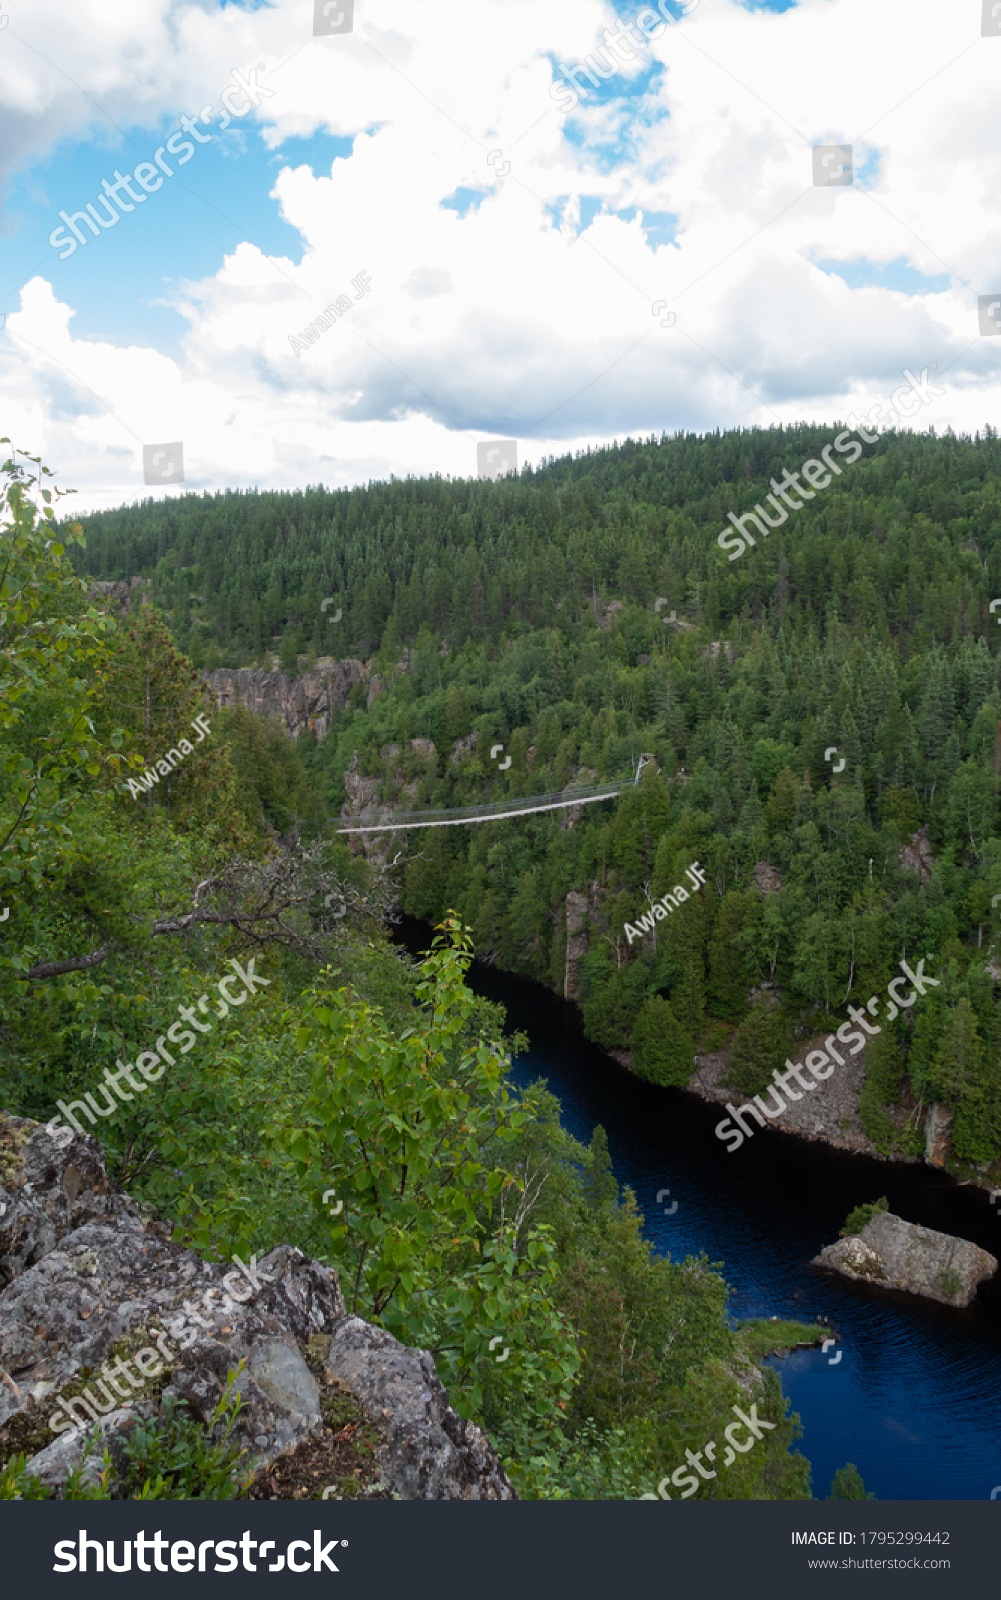 stock-photo-vertical-view-of-a-suspensio